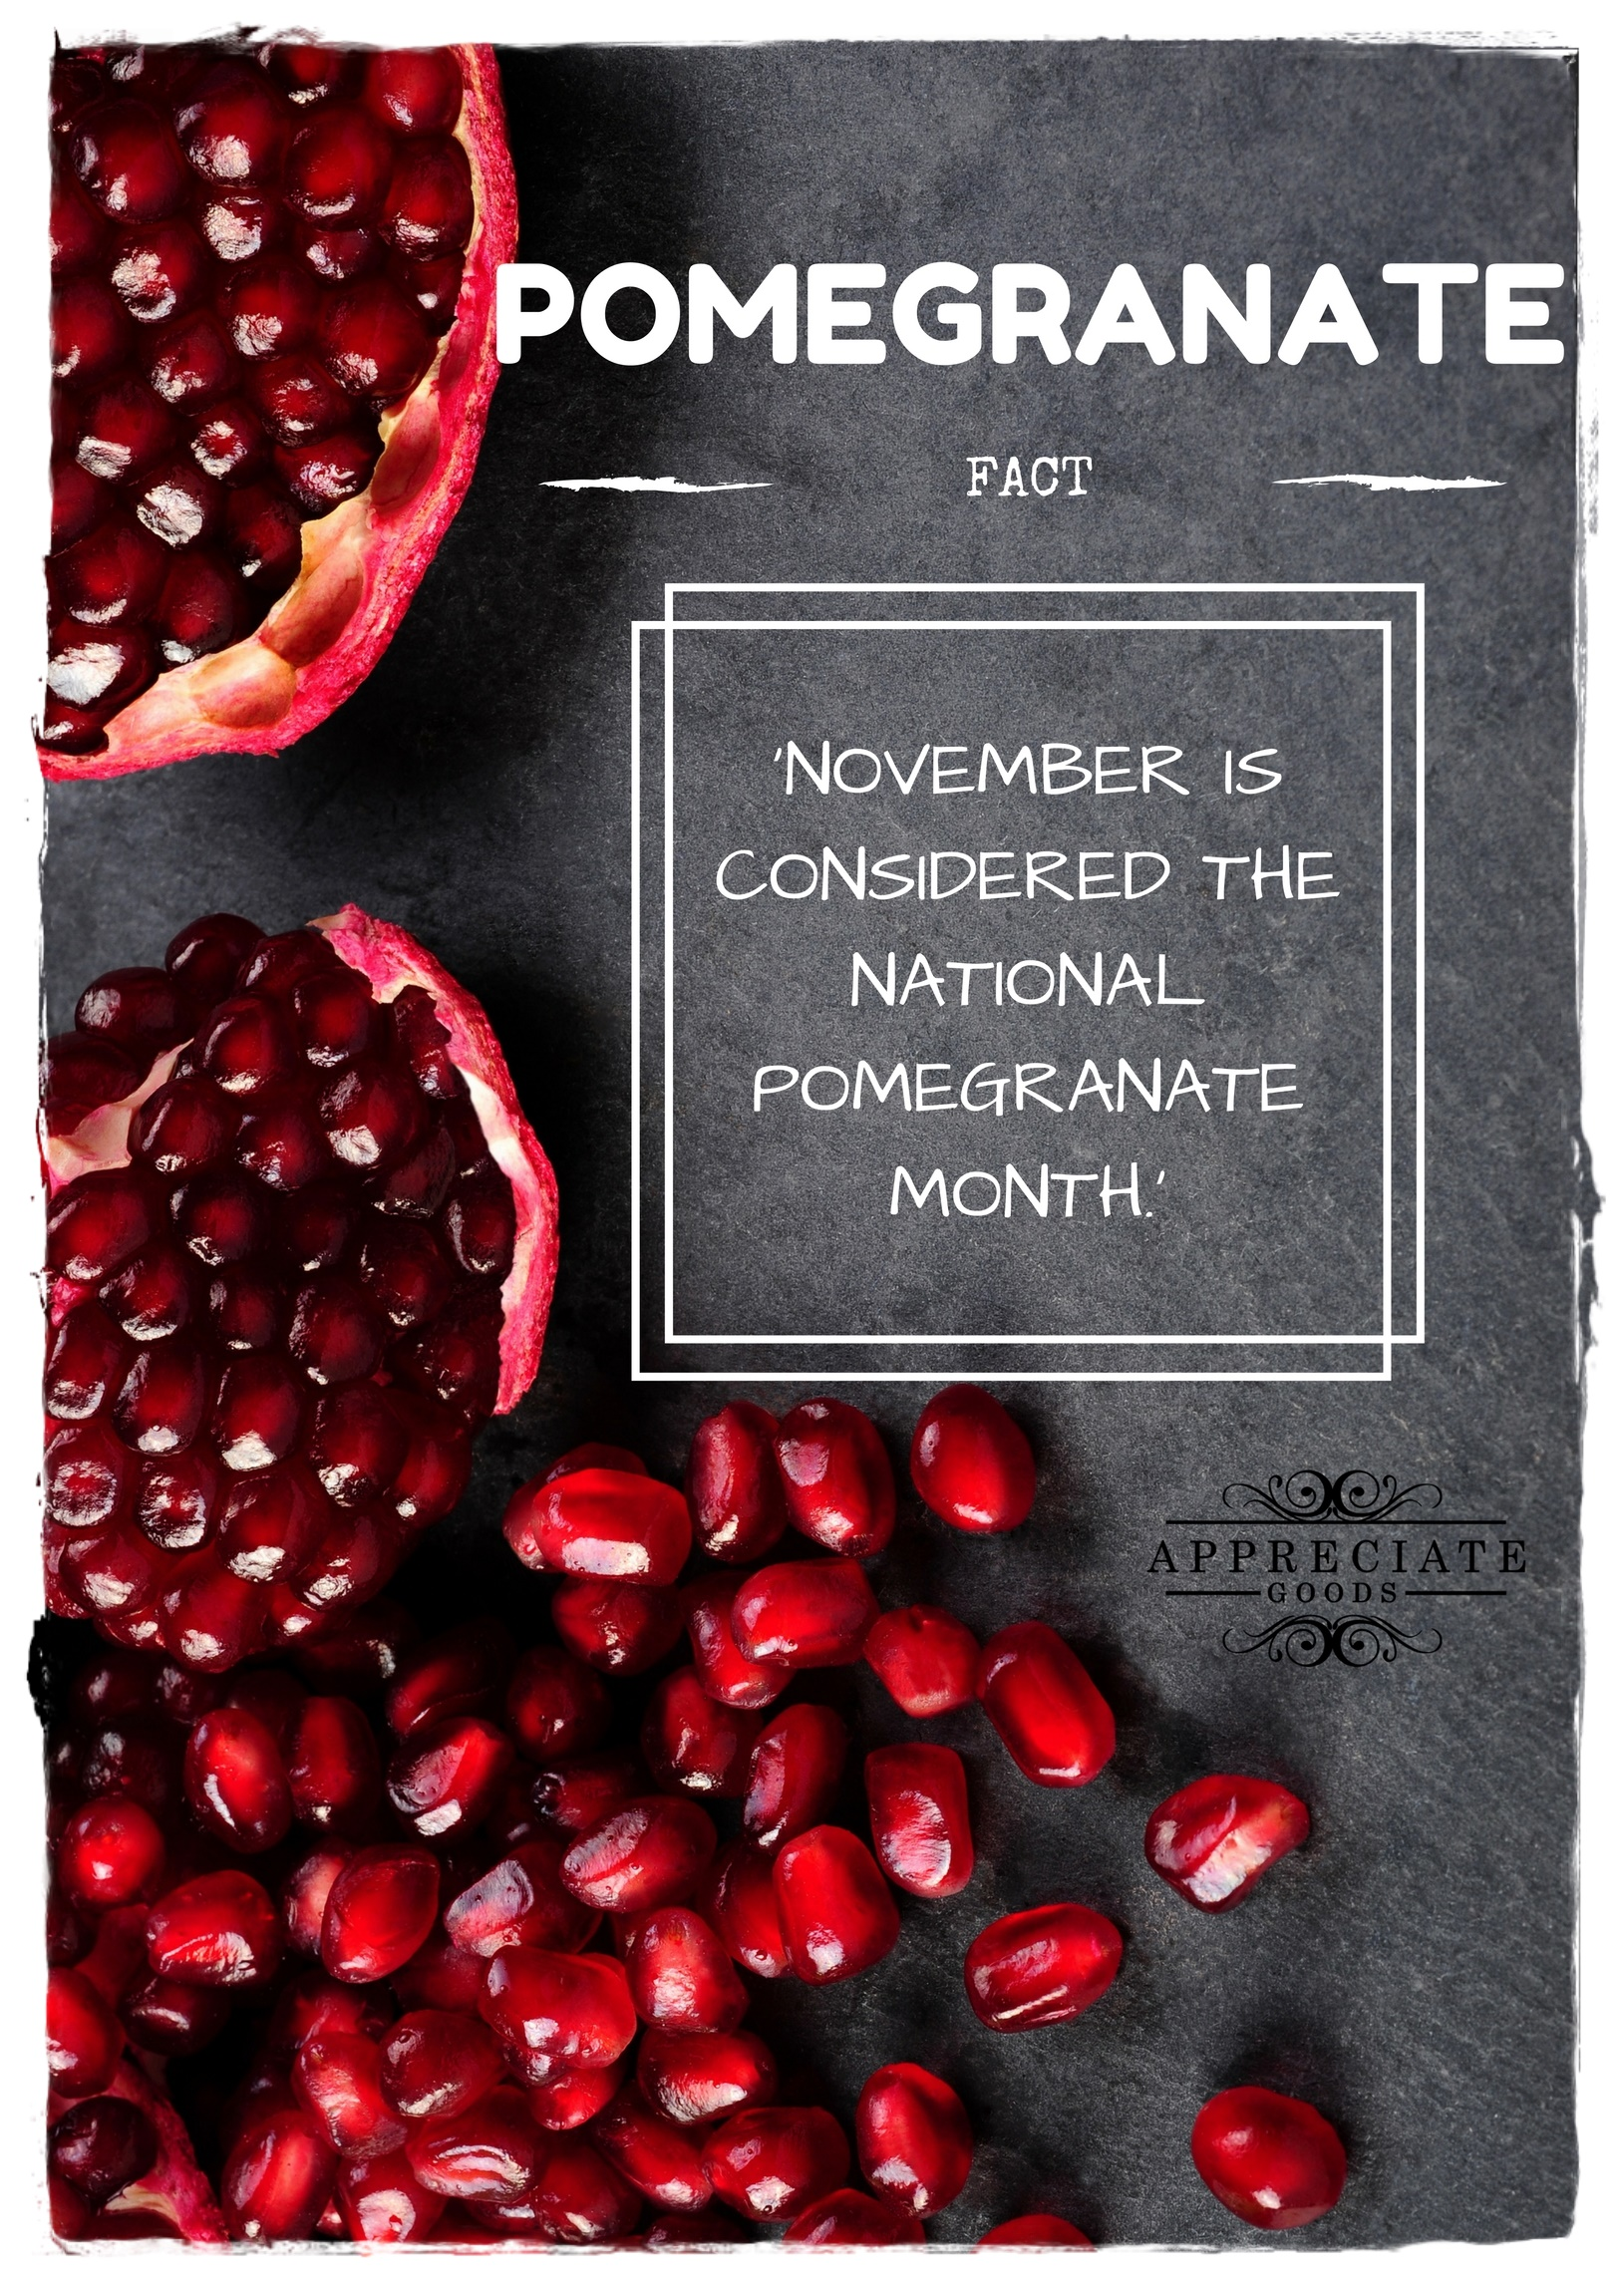 Pomegranate Health Benefits Side Effects Facts Supplements